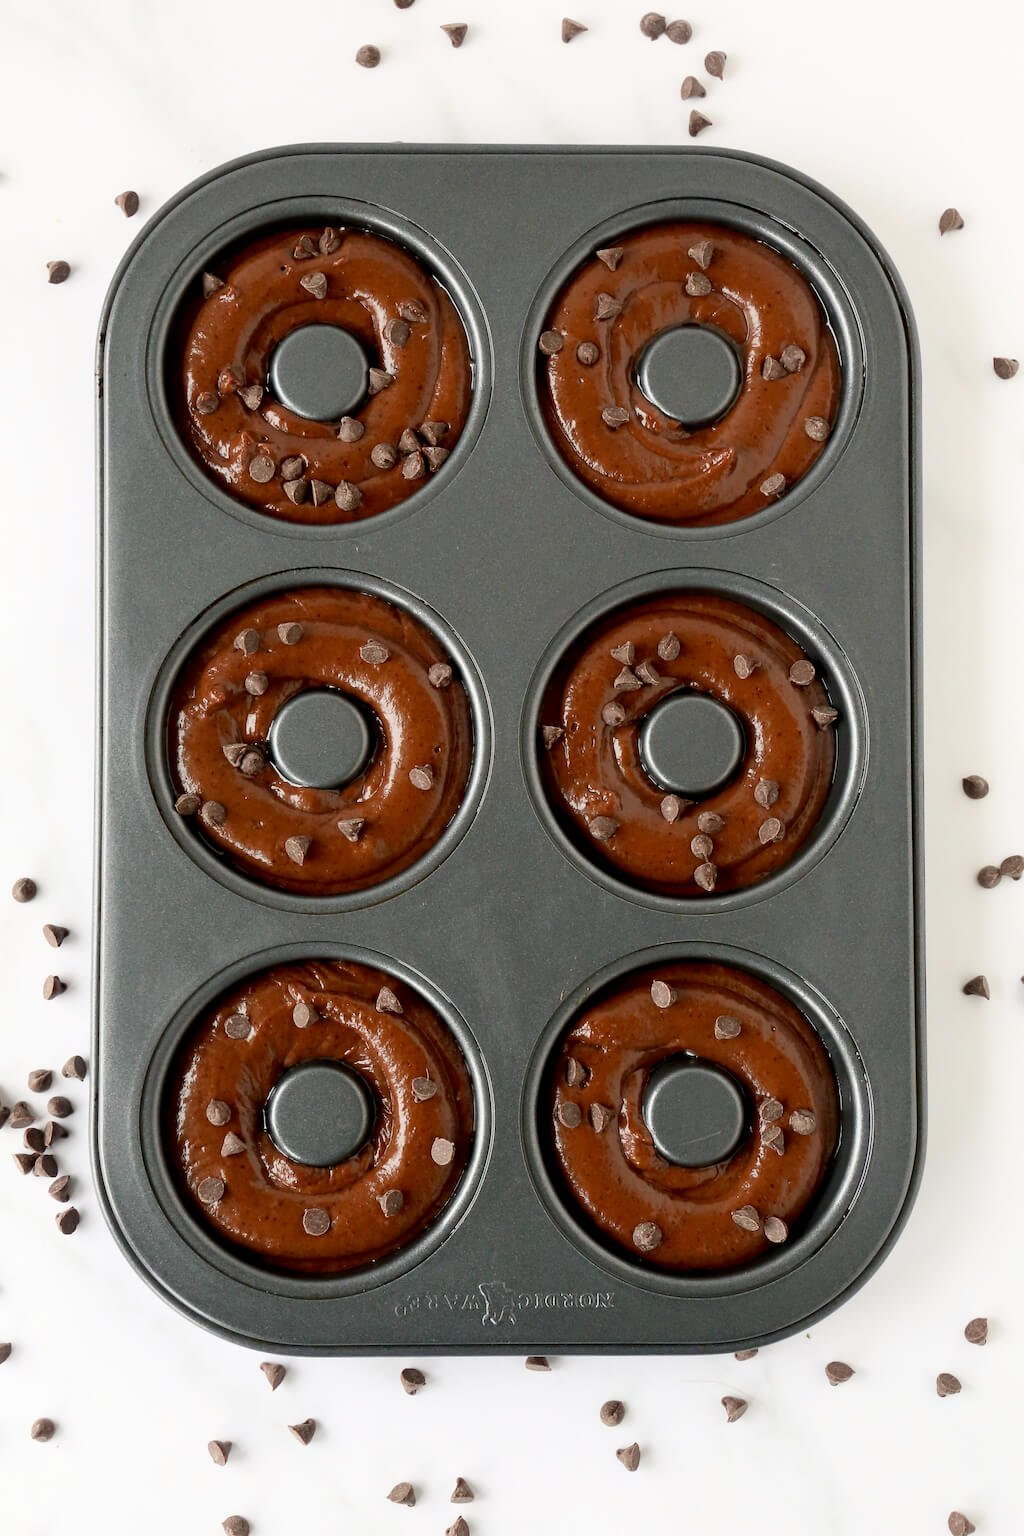 a pan of 6 unbaked donuts with chocolate chips sprinkled around